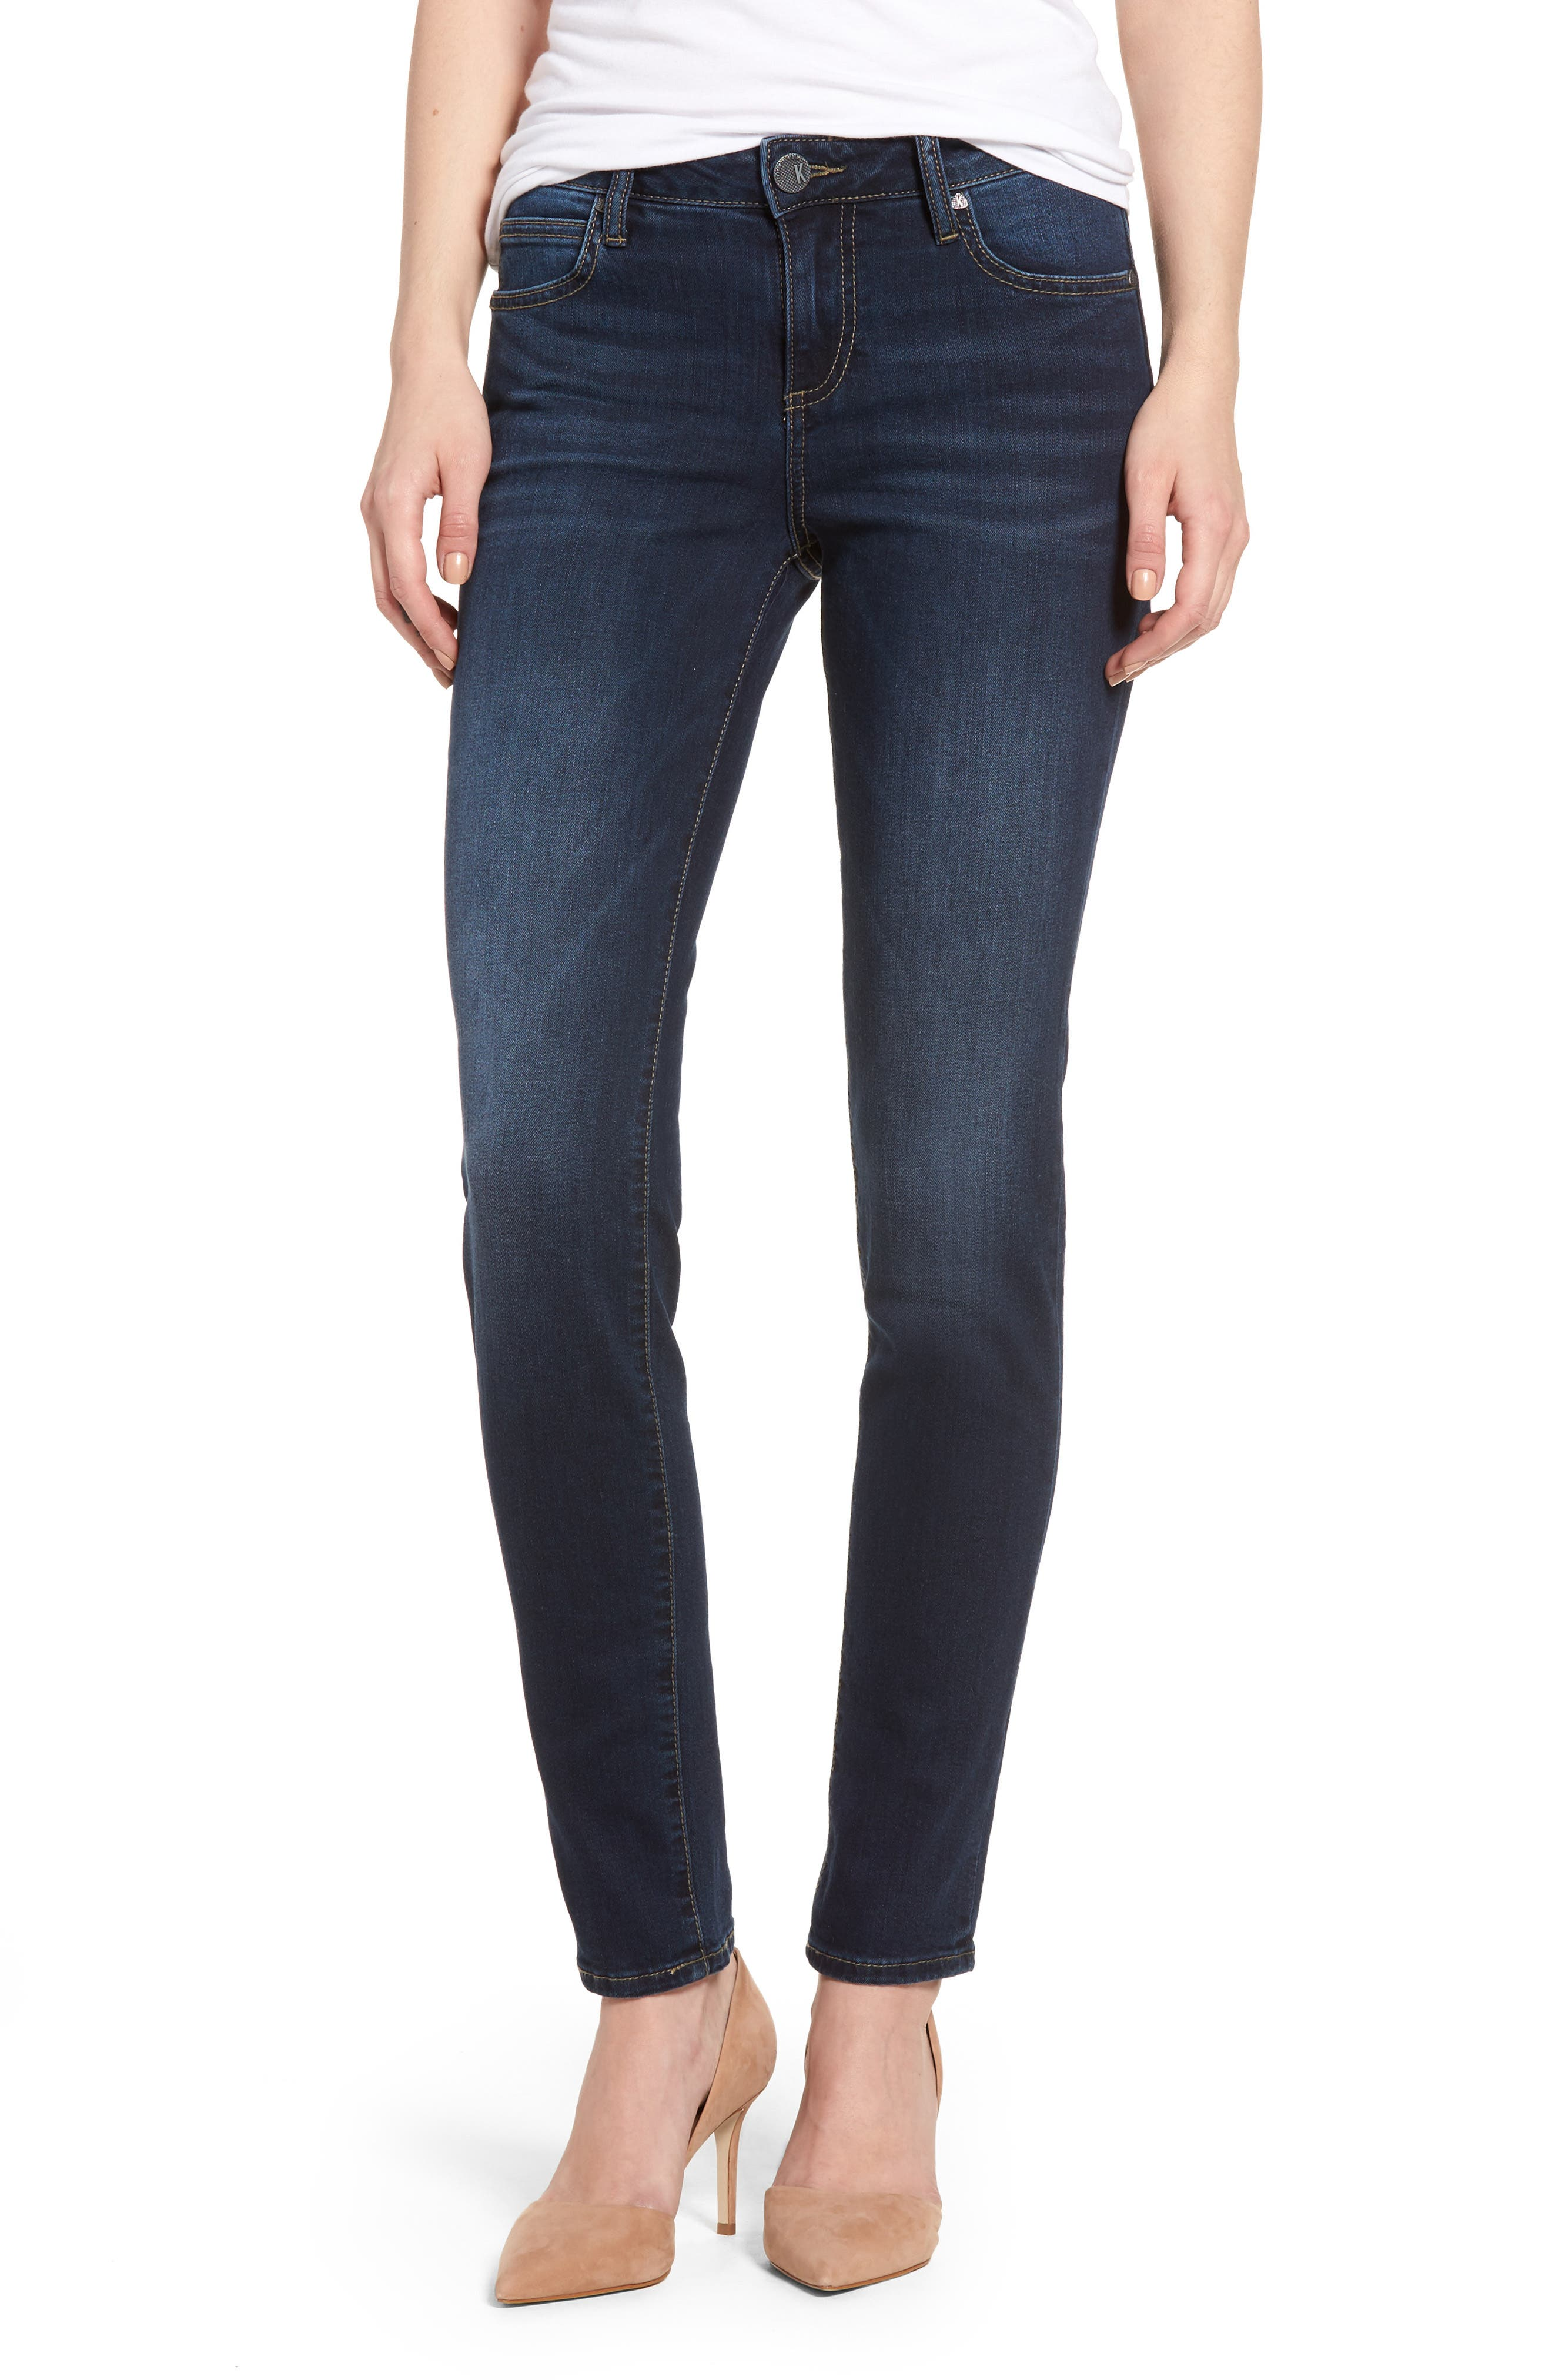 Diana Curvy Fit Skinny Jeans,                             Main thumbnail 1, color,                             473